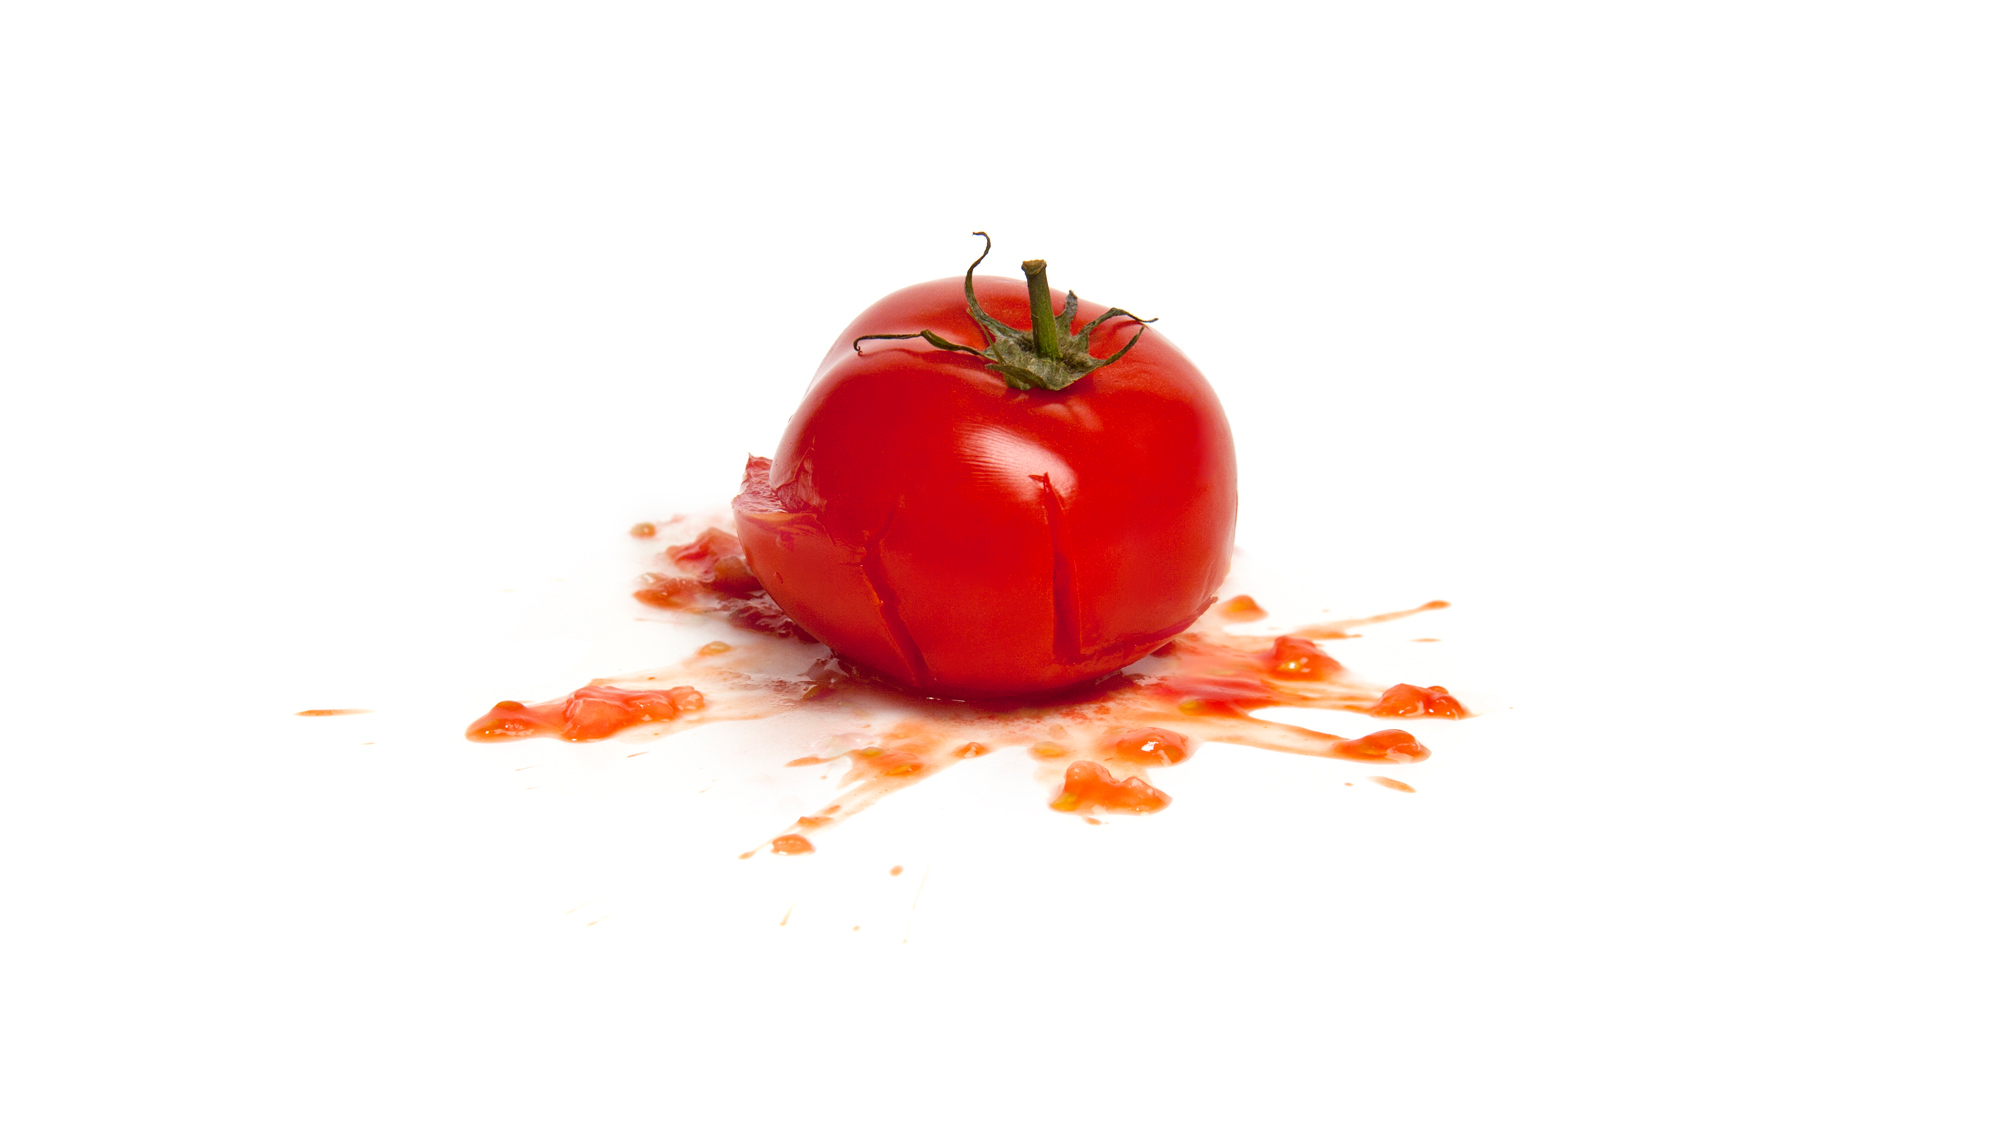 How to Manage Your Time Using the Pomodoro Technique